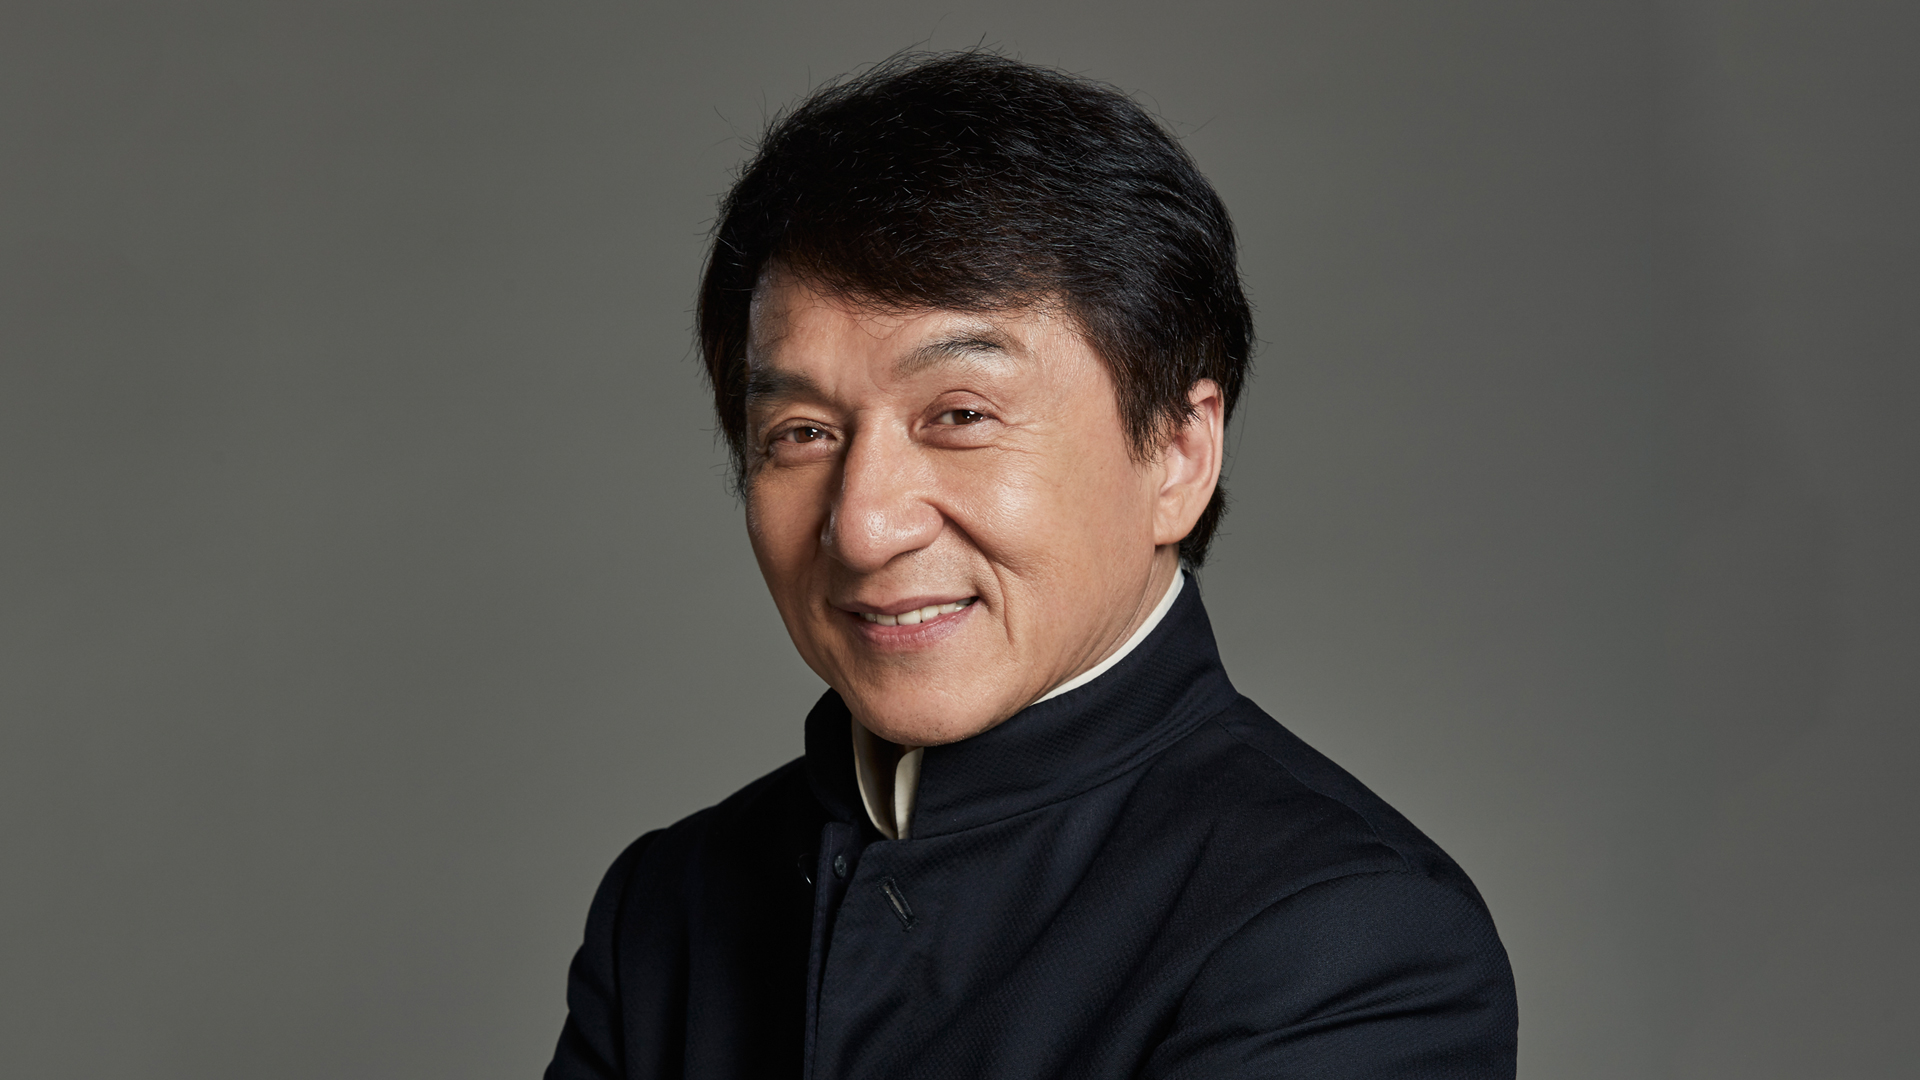 Jackie Chan's early life was not good at all. Born to parents who fled the Chinese civil war,